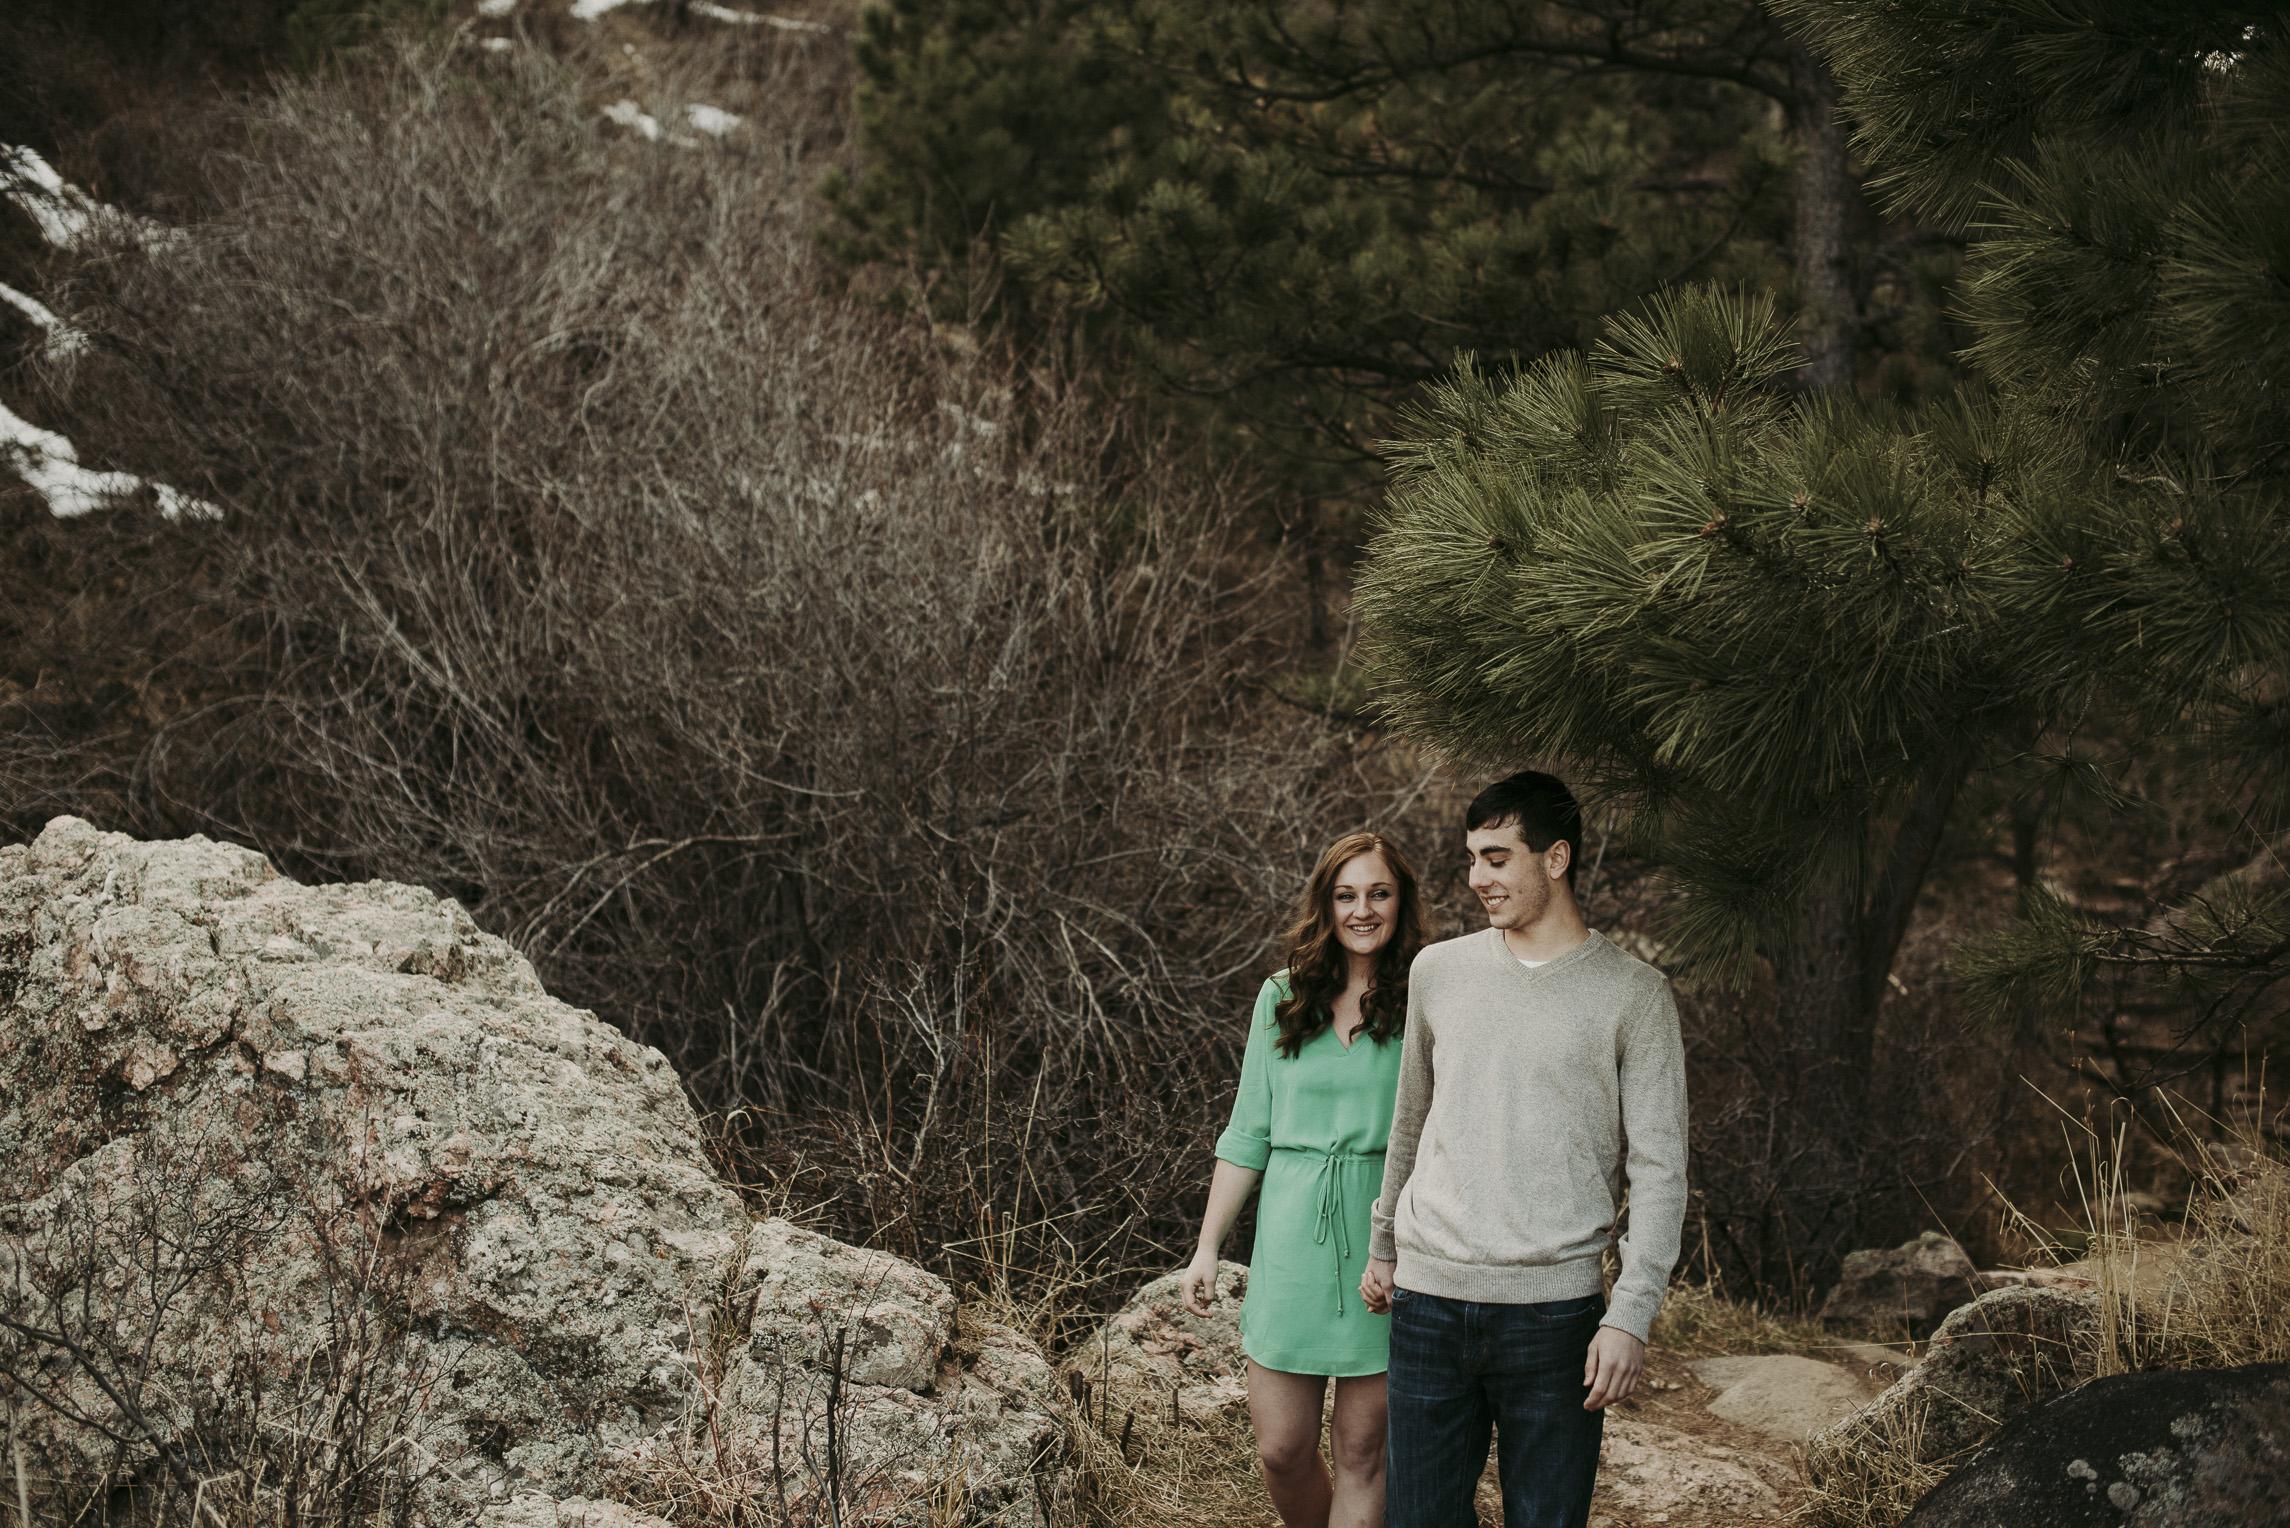 180416CHAI RYAN - COLORADO PHOTOGRAPHER - DEBI RAE PHOTOGRAPHY-8708.jpg